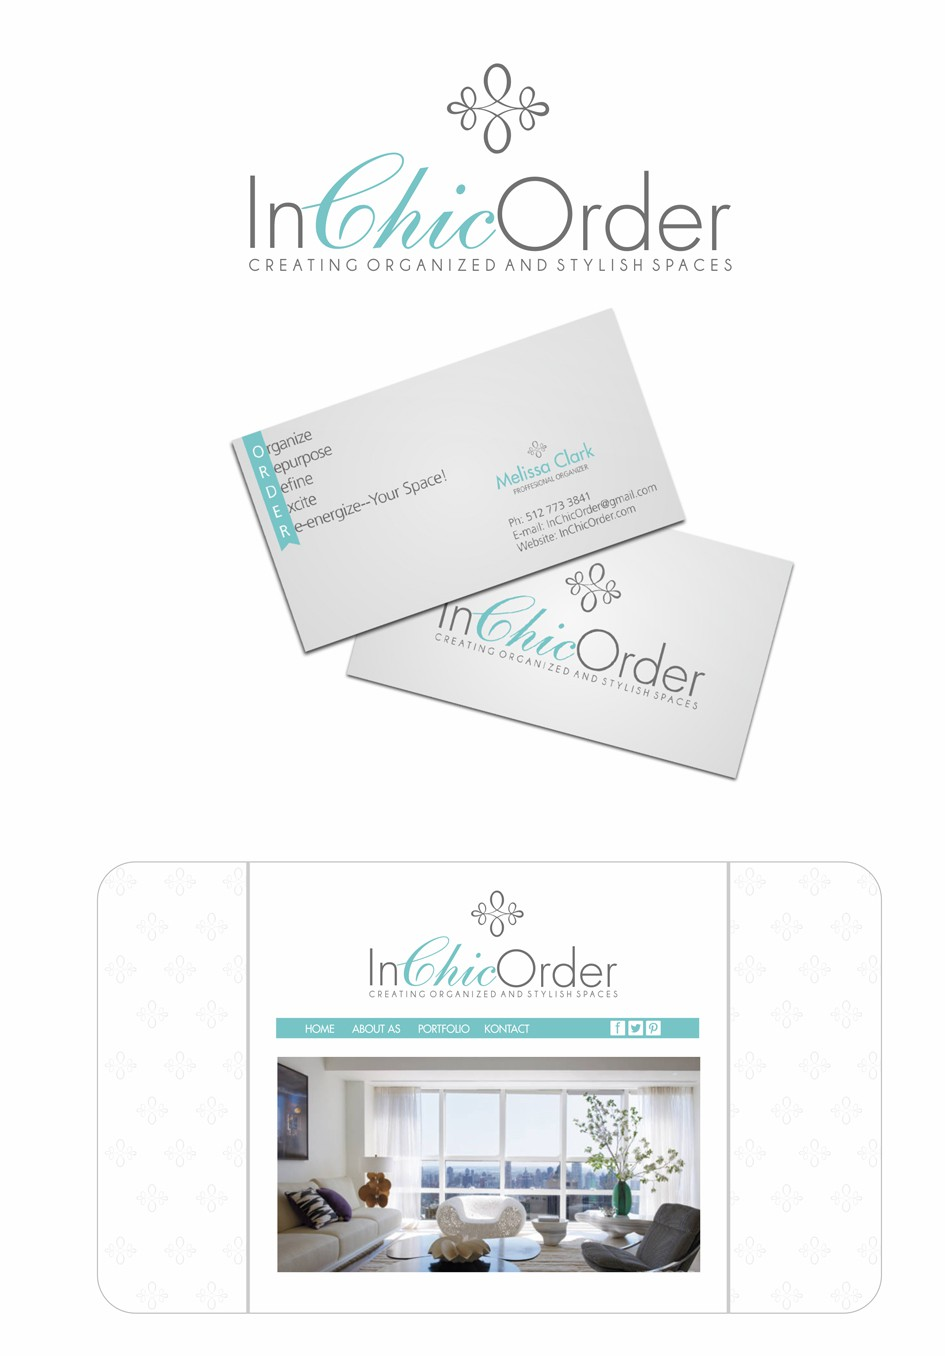 Create the next logo and business card for In Chic Order